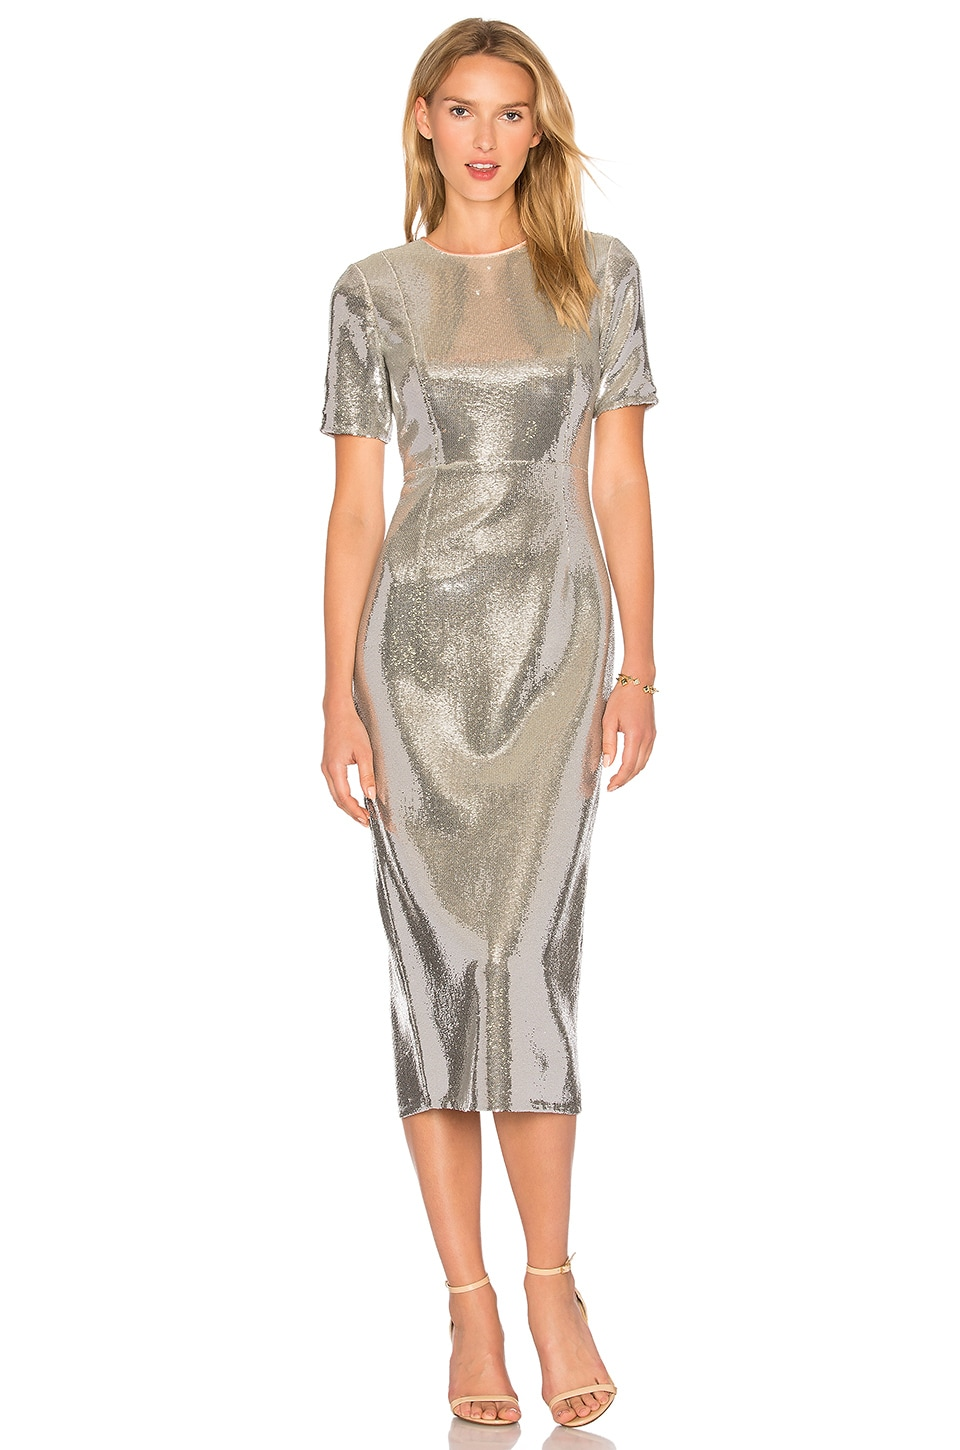 Diane von Furstenberg Sequin Dress in Silver & Nectar